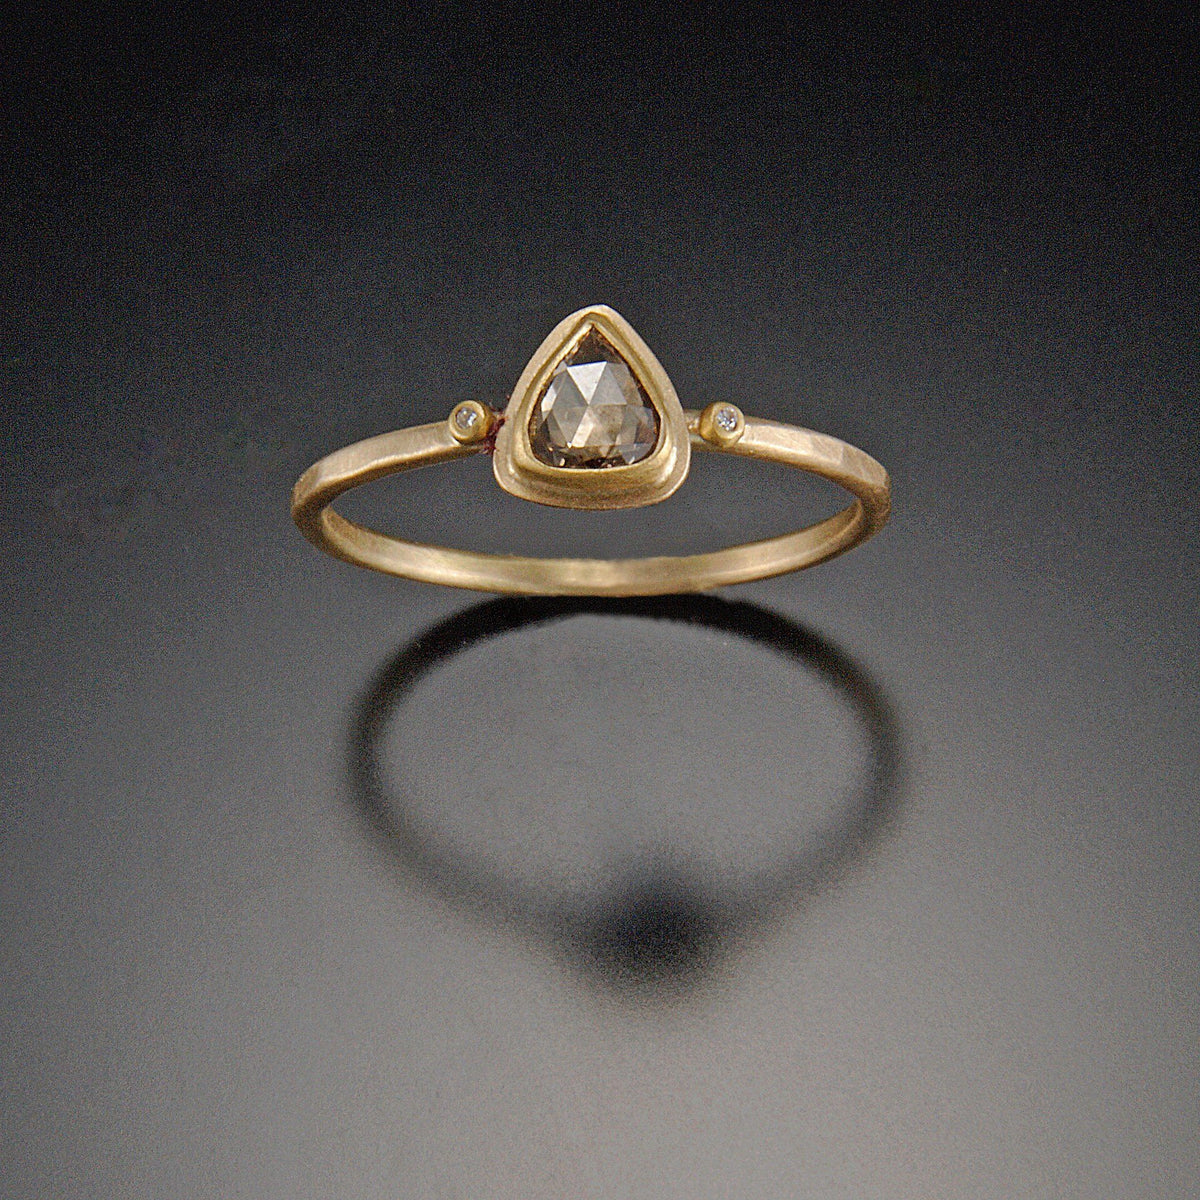 rings ring with teardrop engagement halo pear gold diamond we love pin yellow jewelry